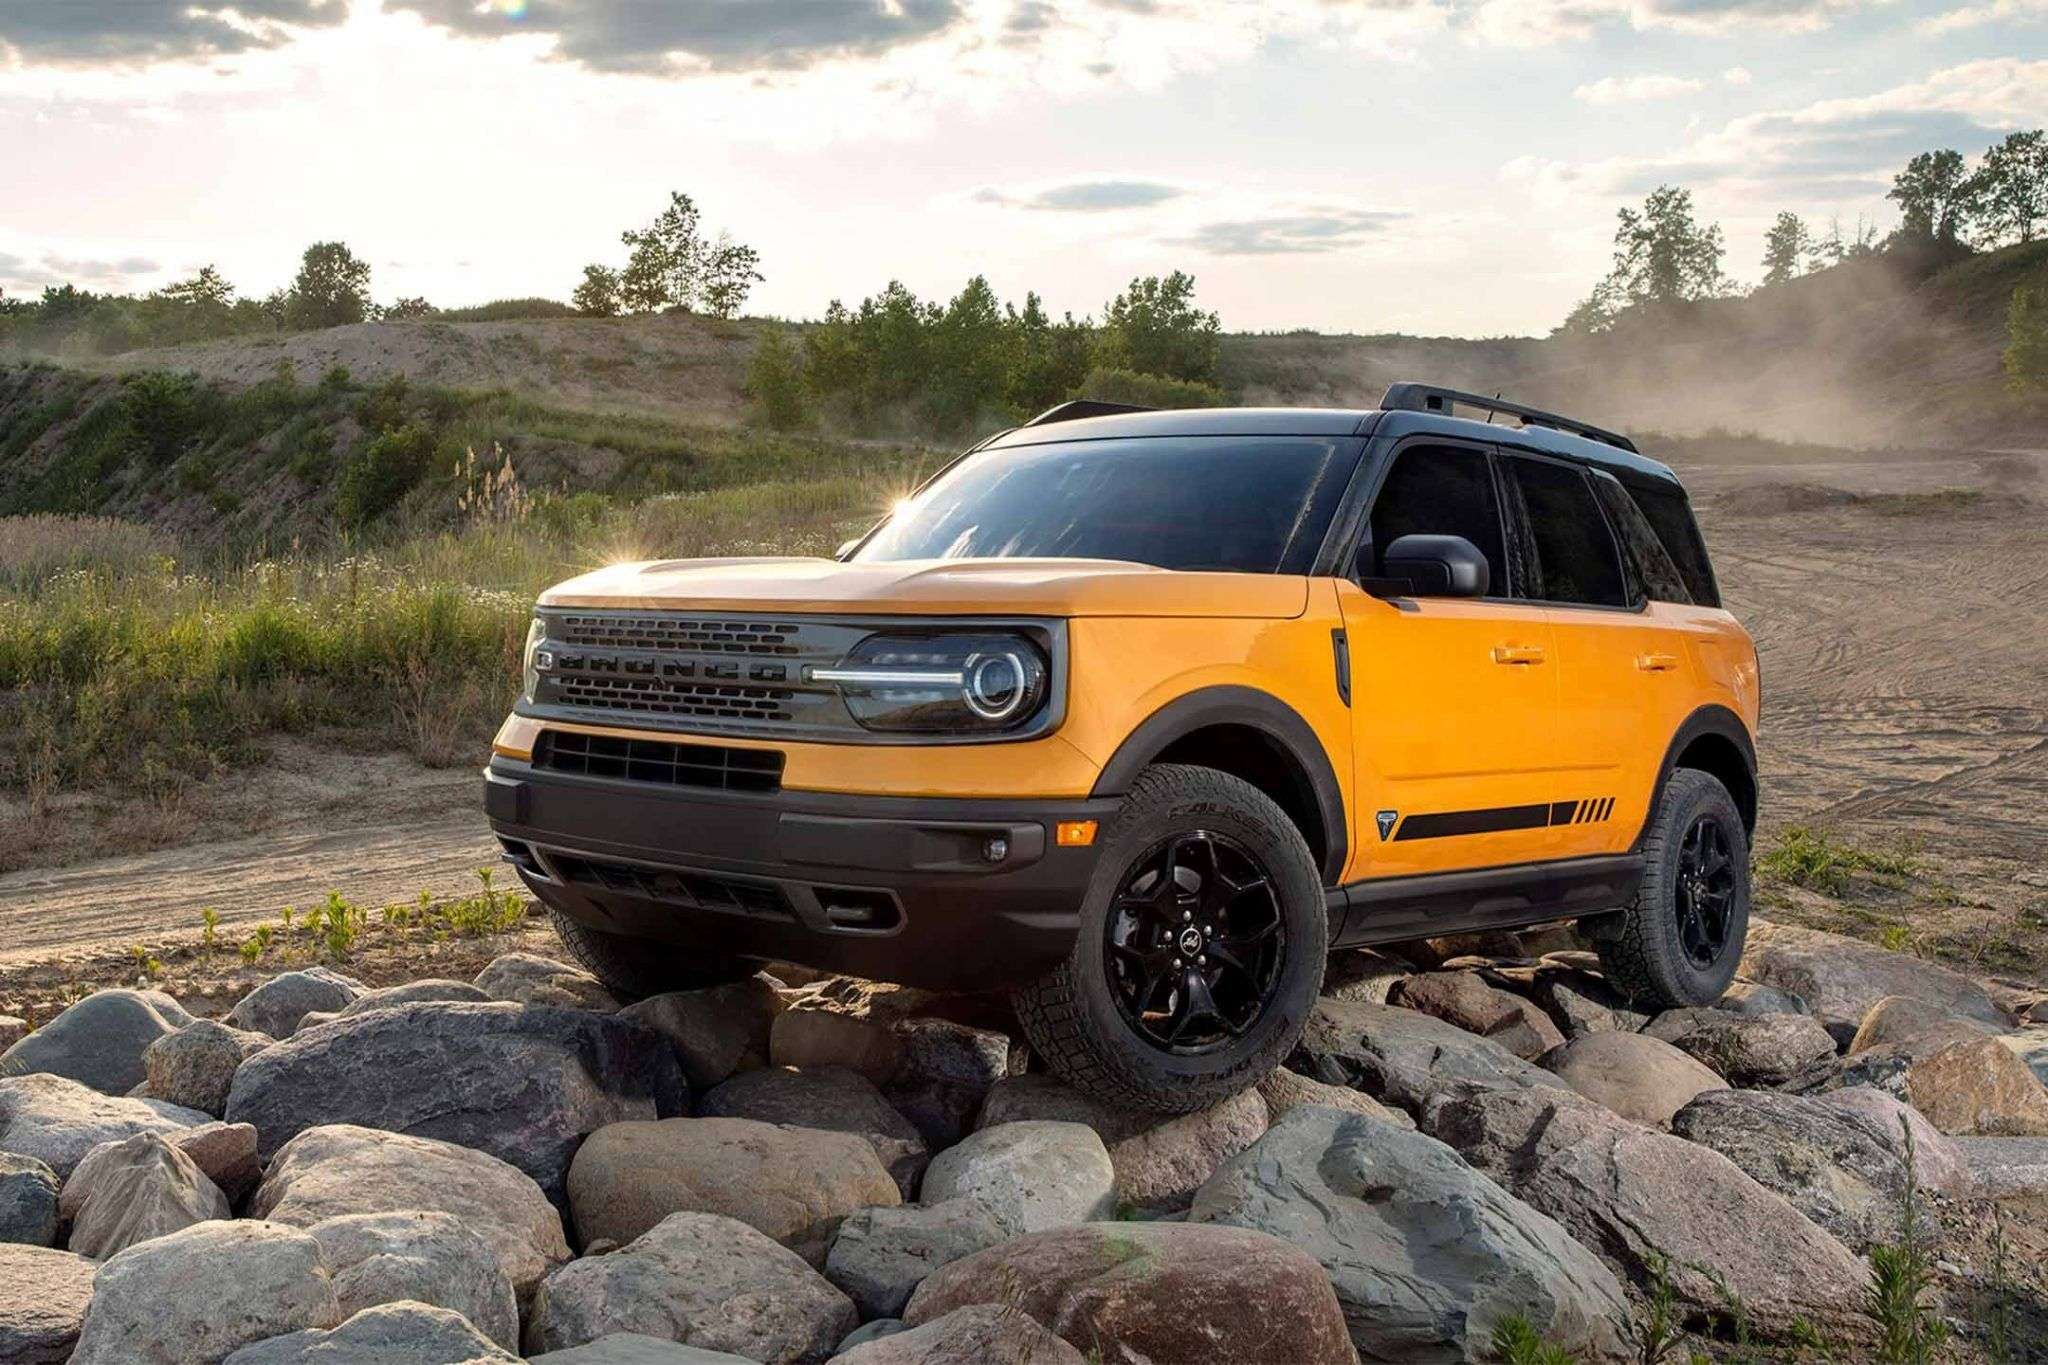 Check Out The 10 Best Off-Road SUVs... That Aren't A Jeep Wranger